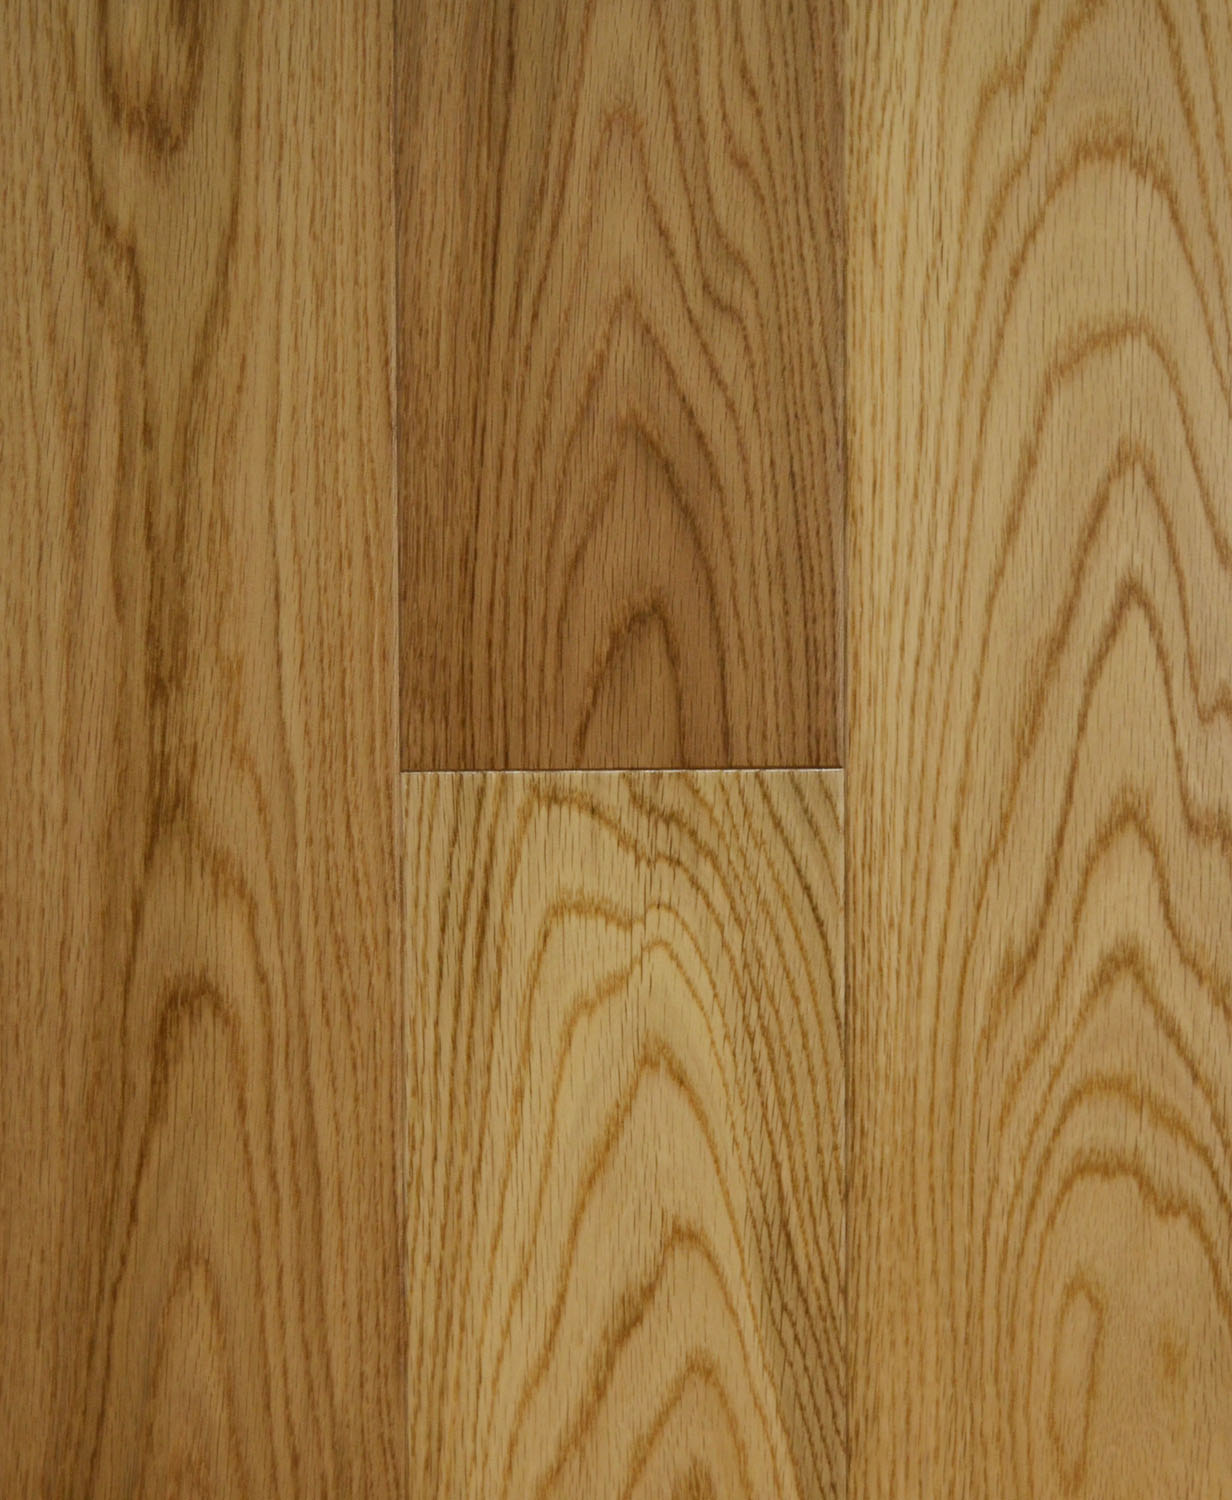 Lm flooring gevaldo natural white oak hardwood flooring 3 for Natural oak wood flooring